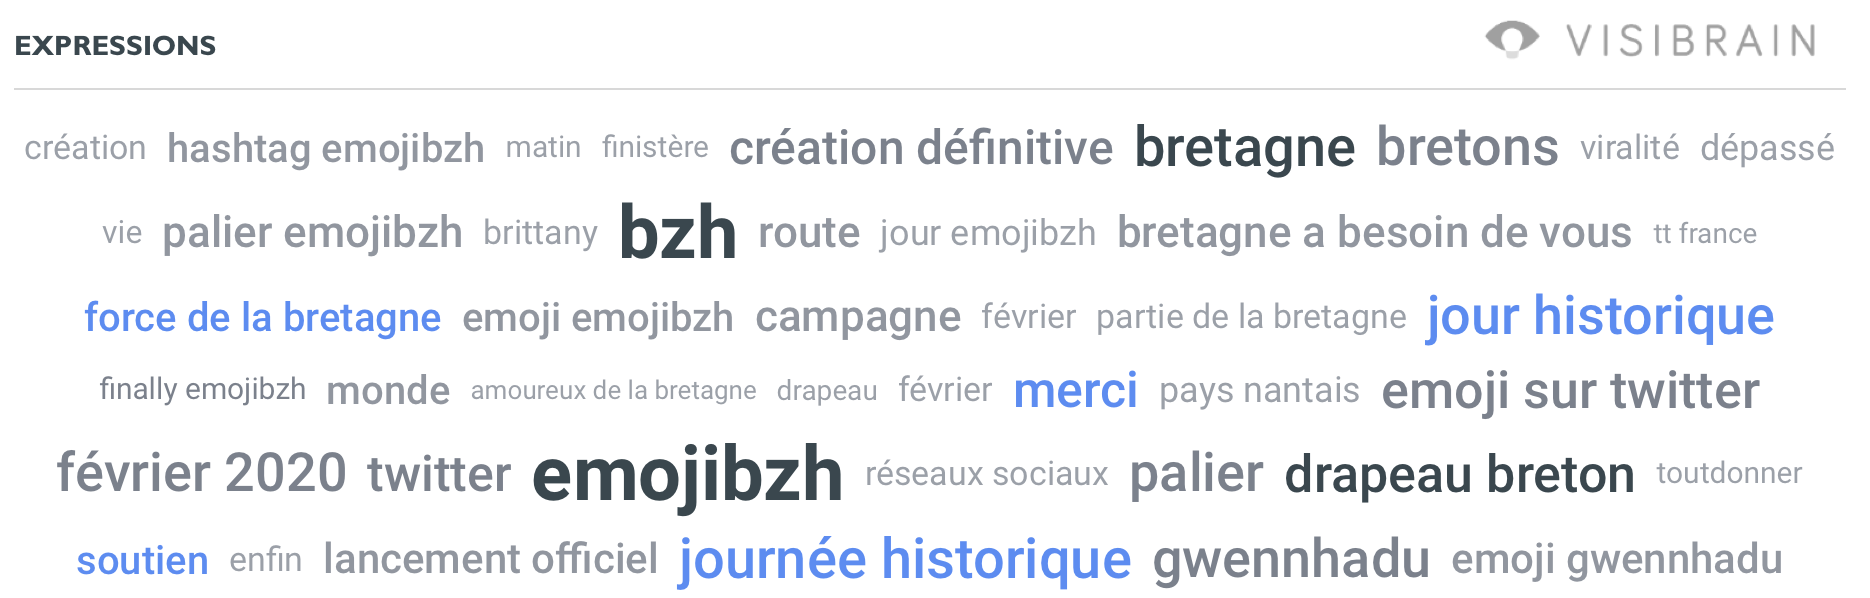 Top expressions #EmojiBZH